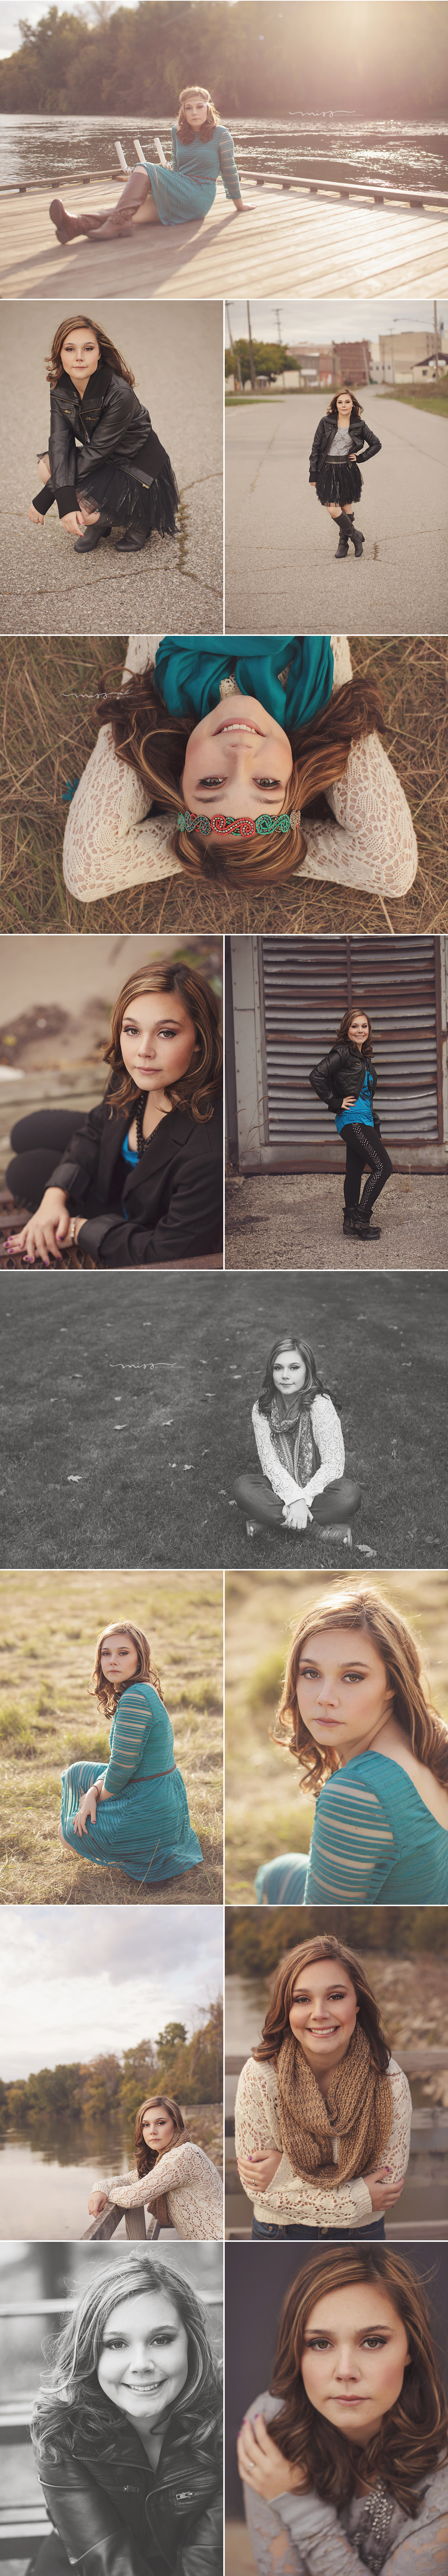 Caro Michigan Senior Photographer | Miss by Marissa | Savannah 2